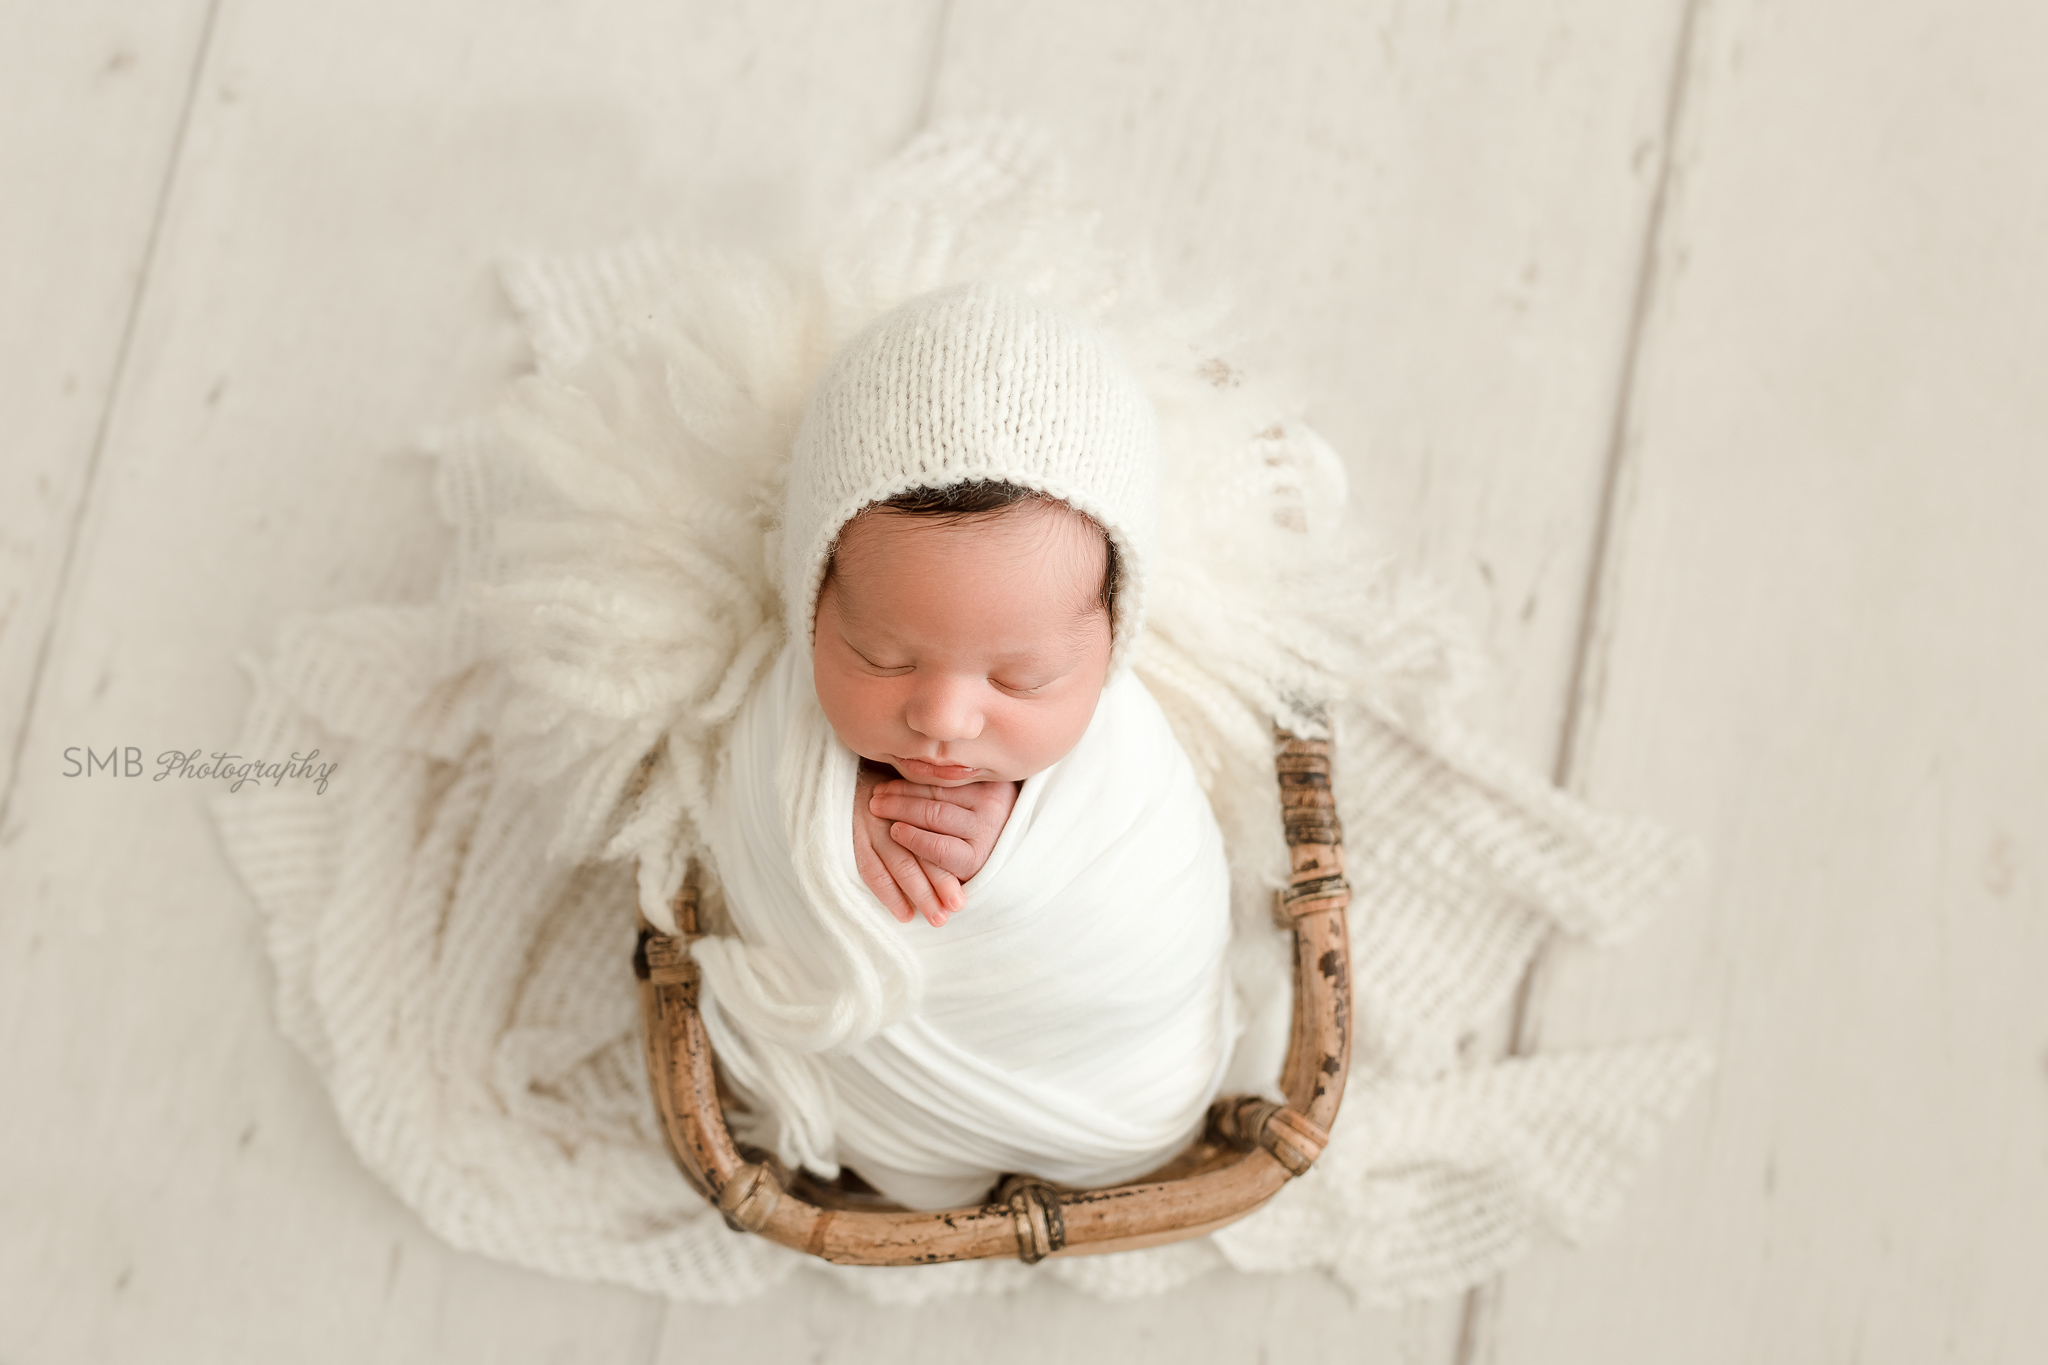 Newborn wrapped in white in bamboo basket